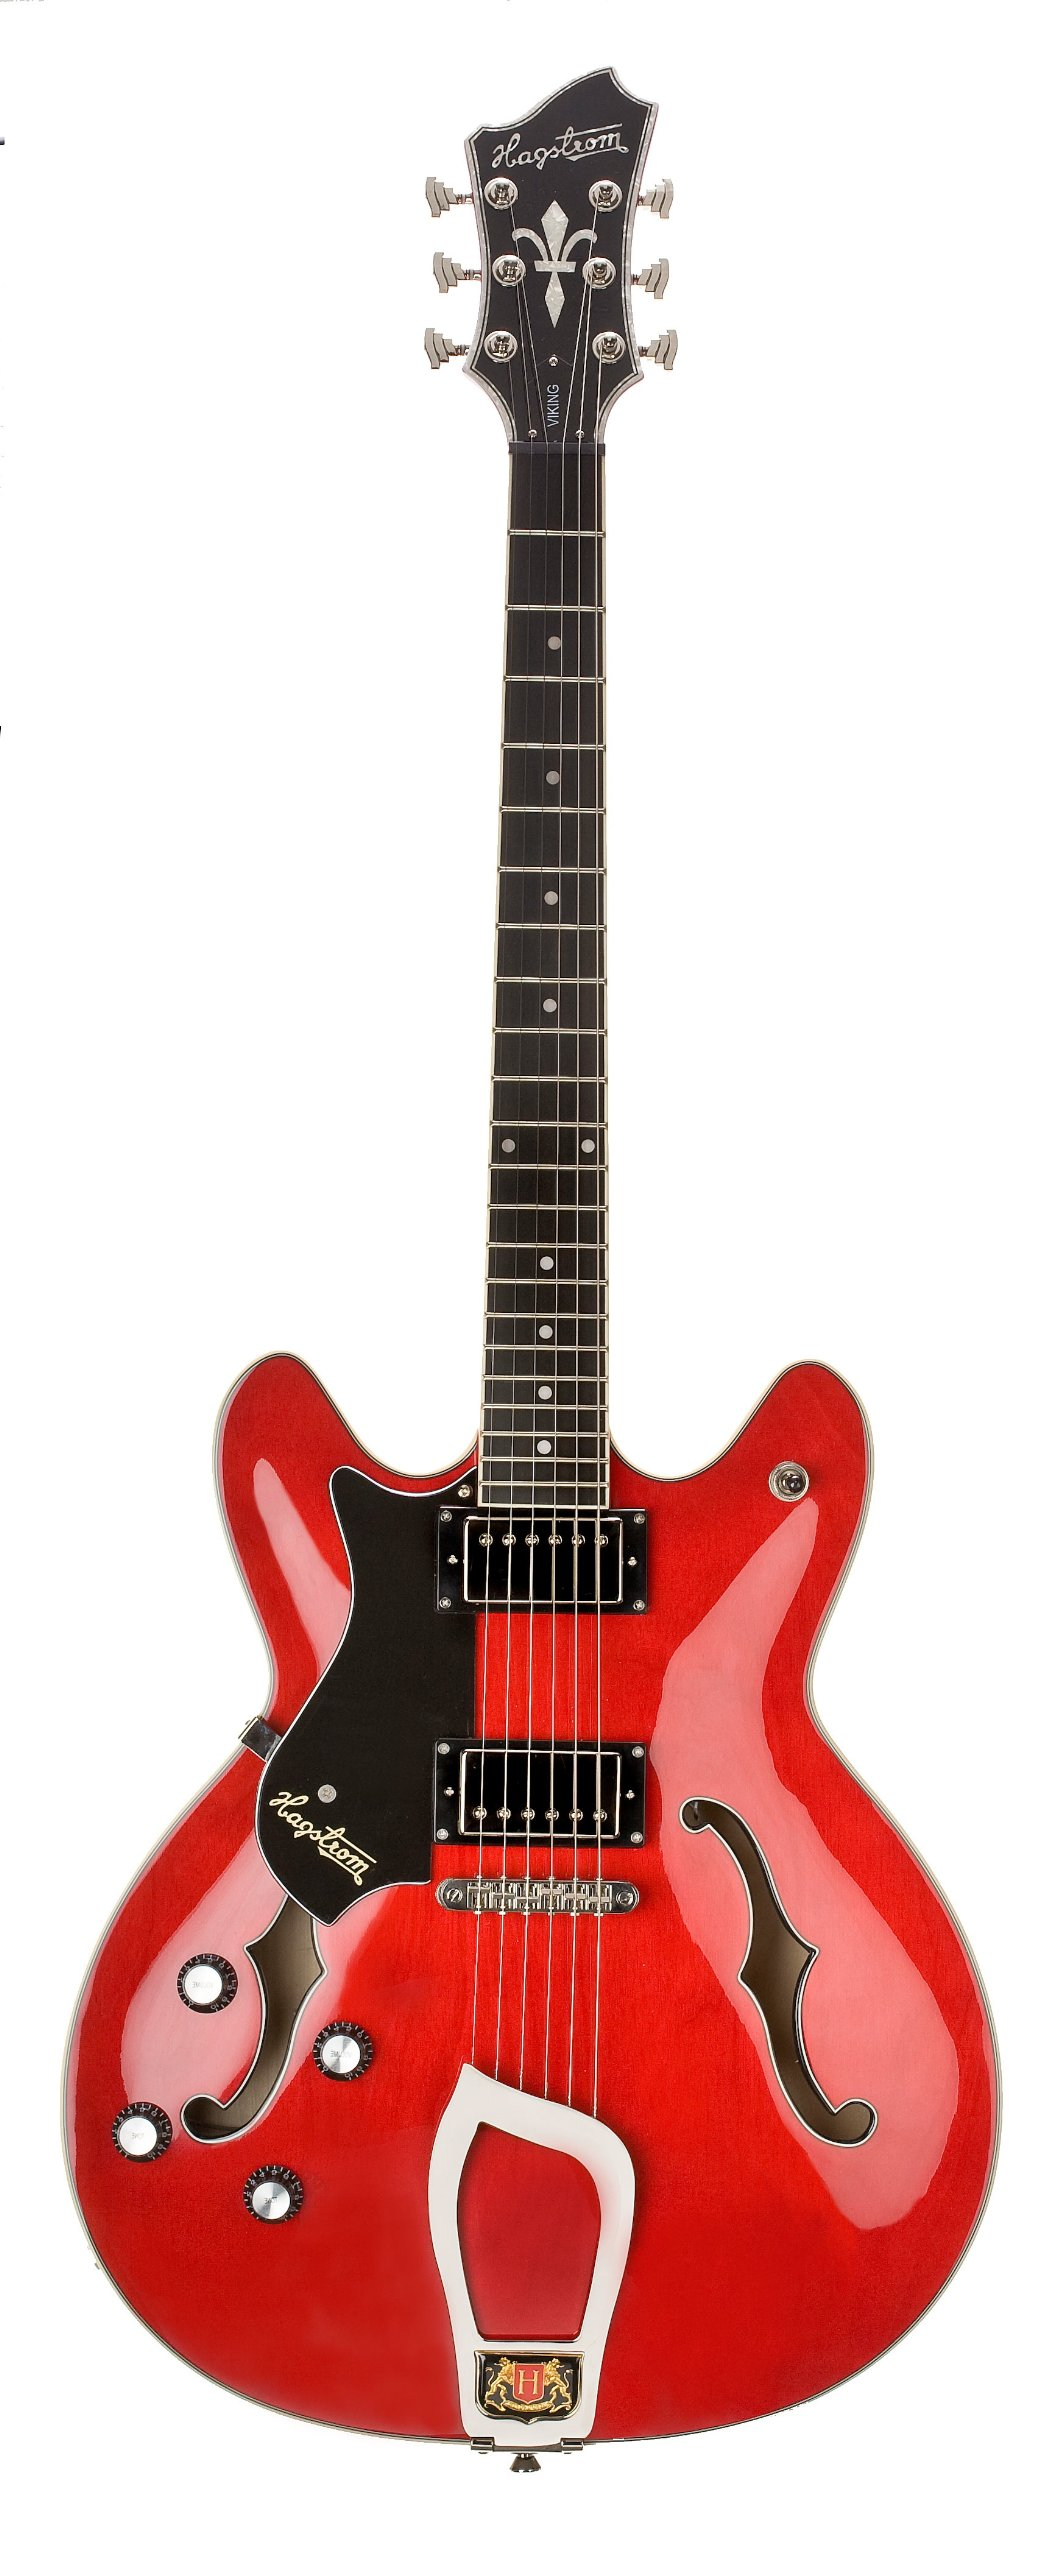 Cheap Hagstrom Viking Electric Guitar (Left Handed Wild Cherry Transparent) Black Friday & Cyber Monday 2019